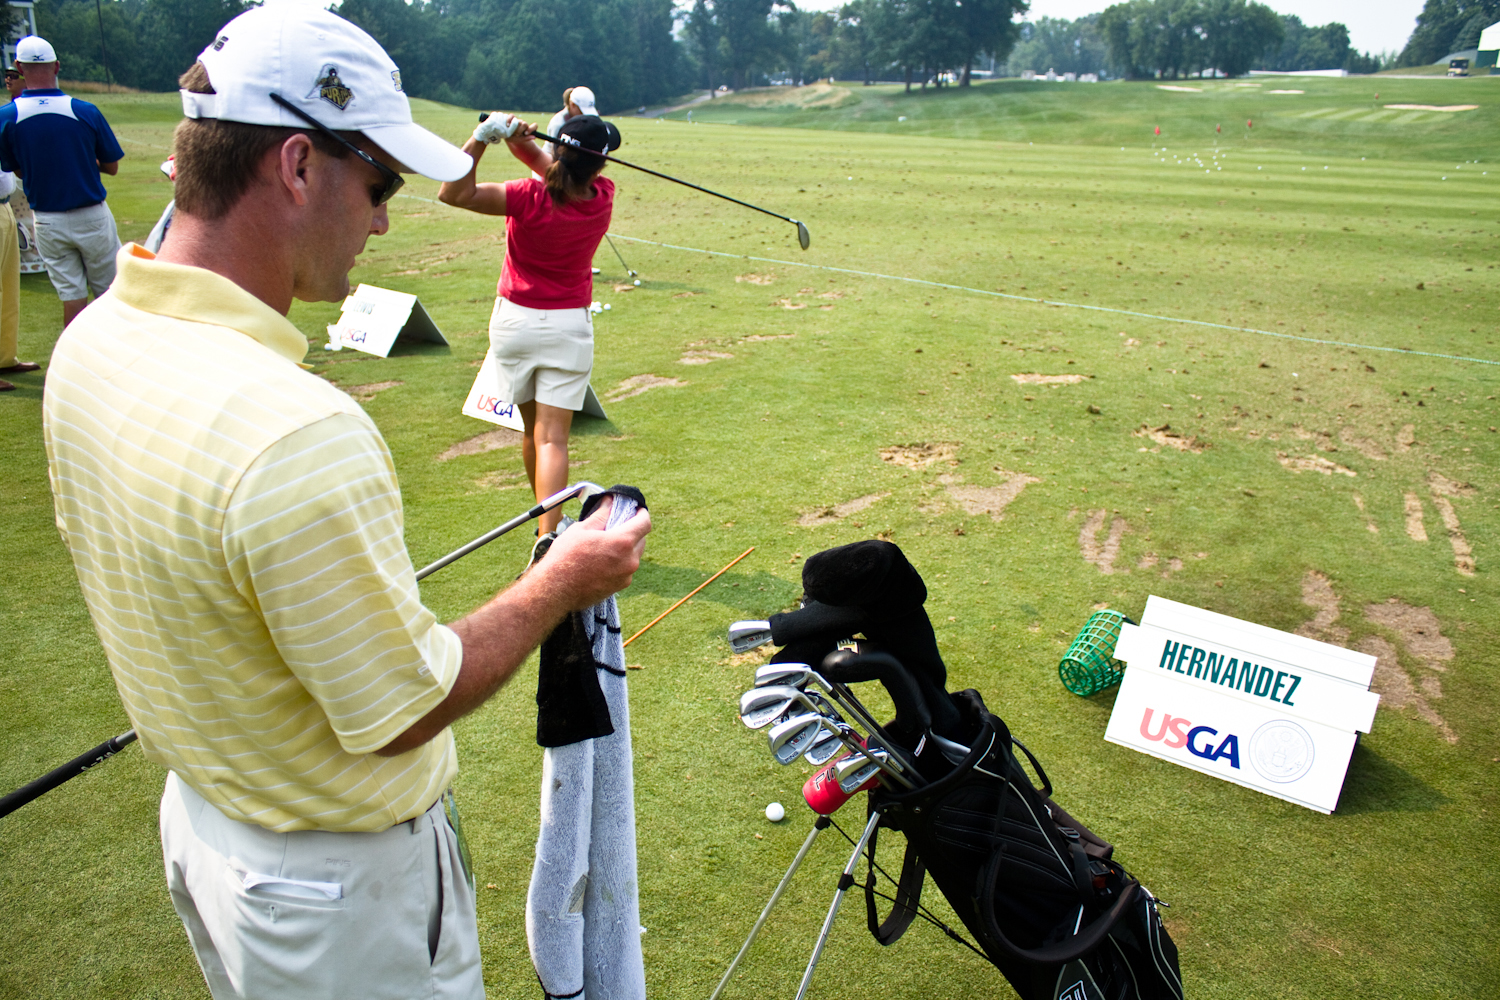 Greg Robertson (left) and Maria Hernandez on the practice range at Oakmont.